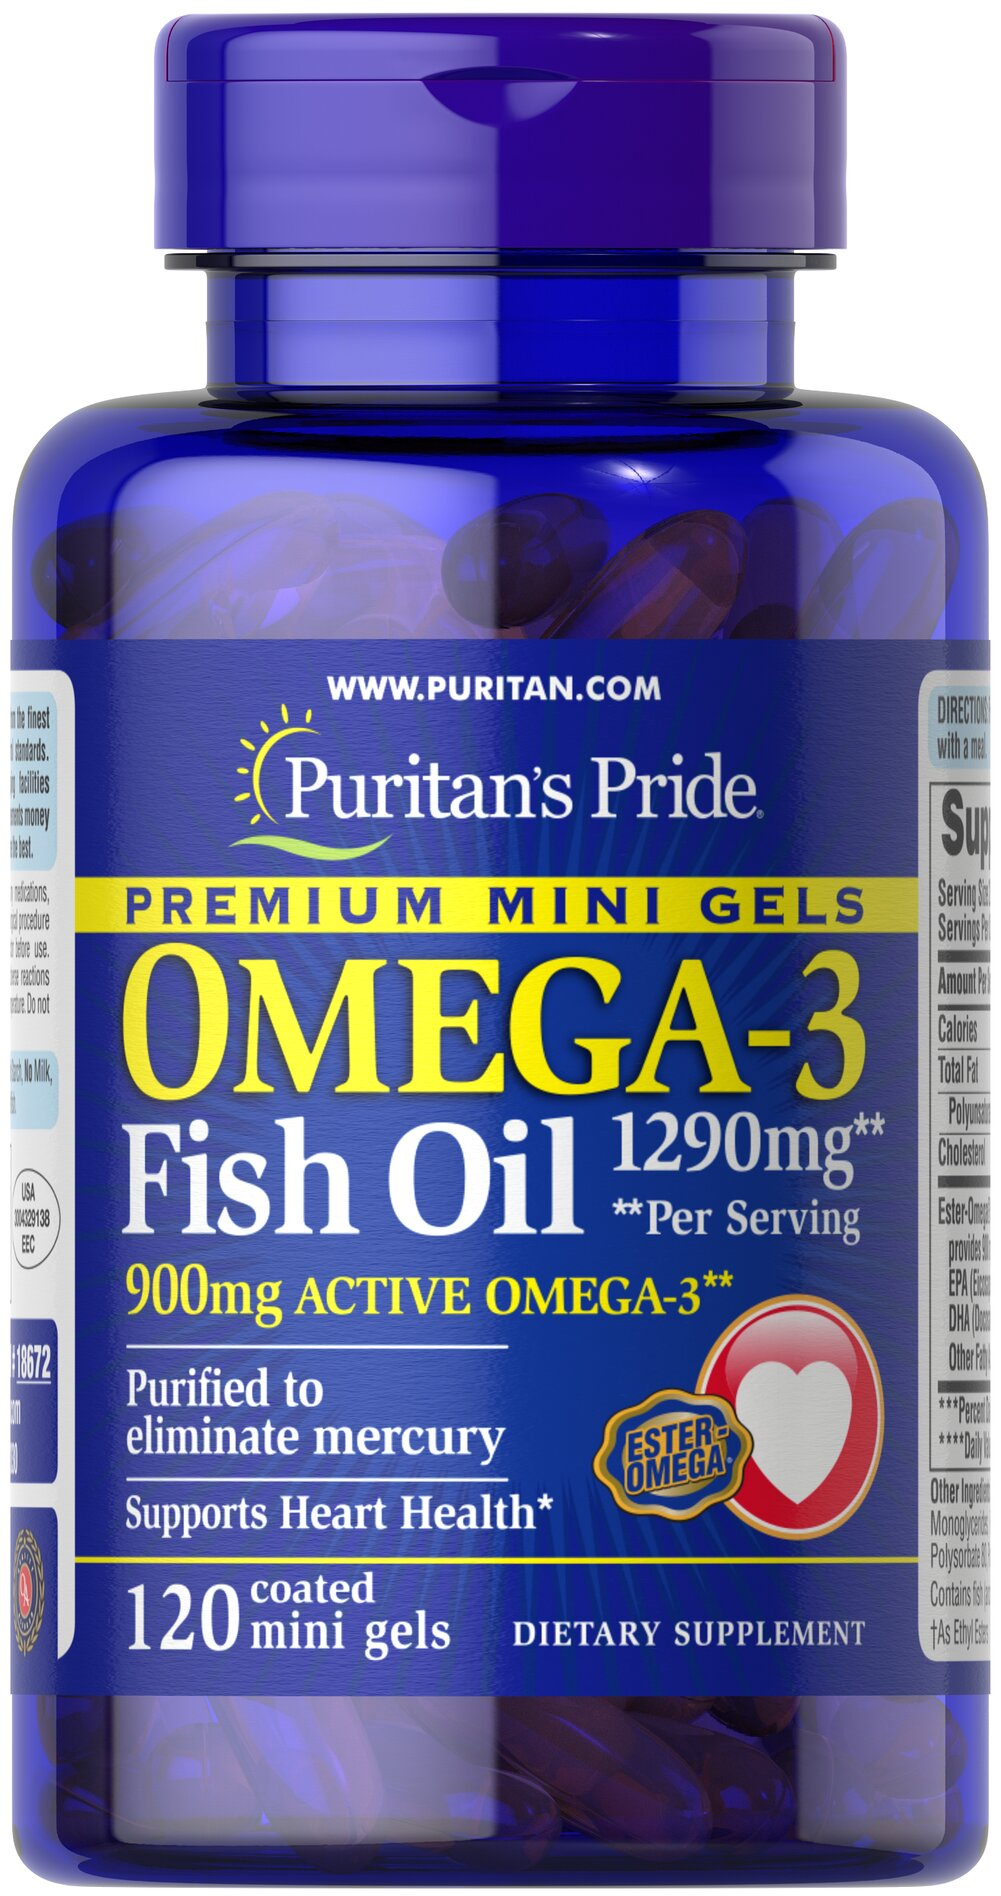 Omega-3 Fish Oil 645 mg Mini Gels (450 mg Active Omega-3) <p><strong>Purified to Eliminate Mercury</strong></p><p>Enhanced with 900 mg of active Omega-3 per serving</p><p>Mercury free mini gels are coated to prevent fishy aftertaste</p> 120 Coated Softgels 645 mg $34.39